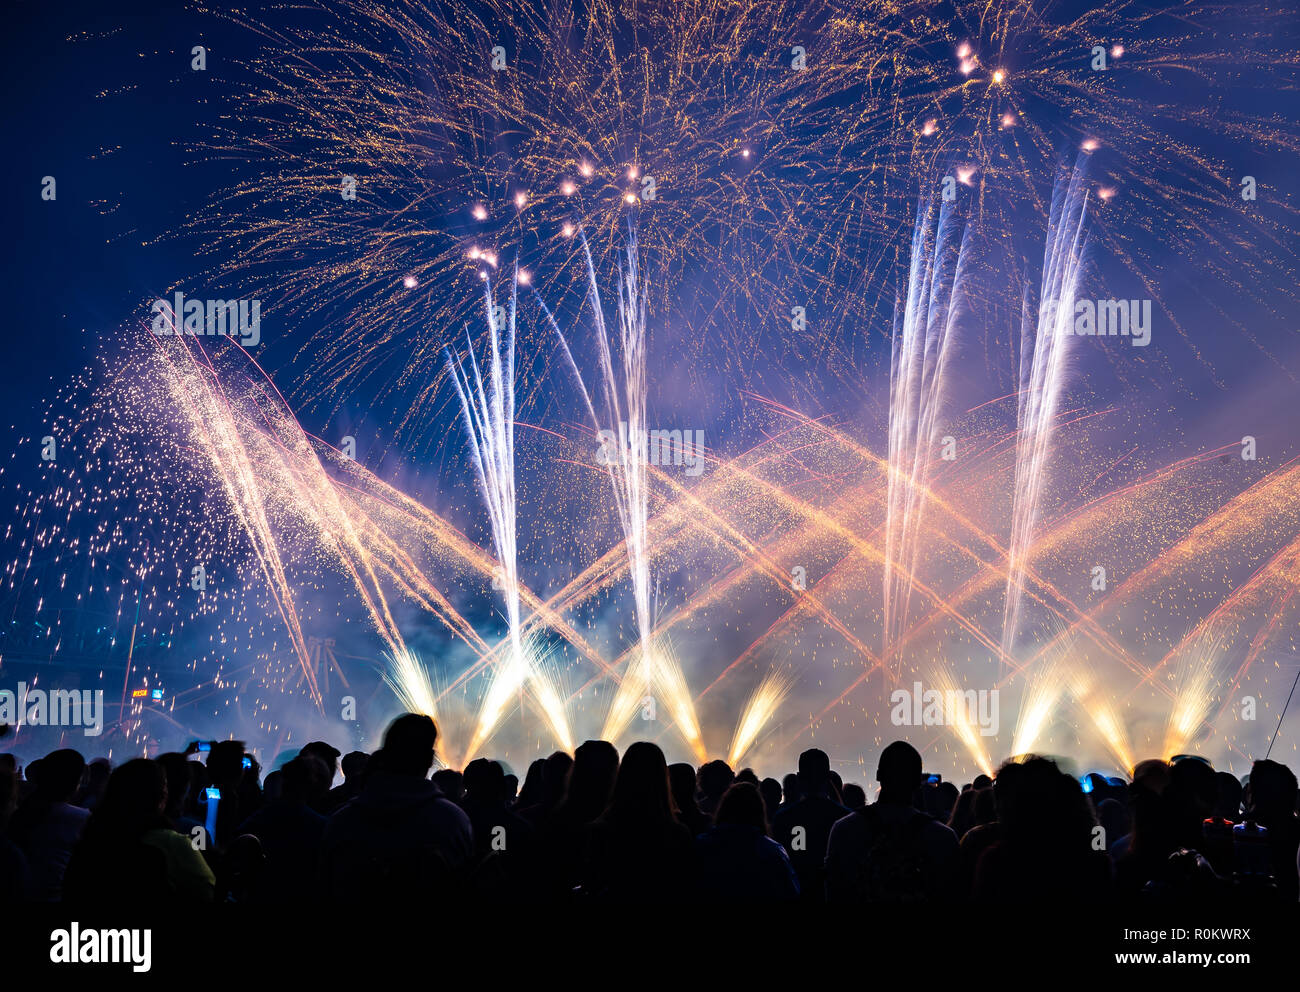 People watching fireworks in night sky Stock Photo